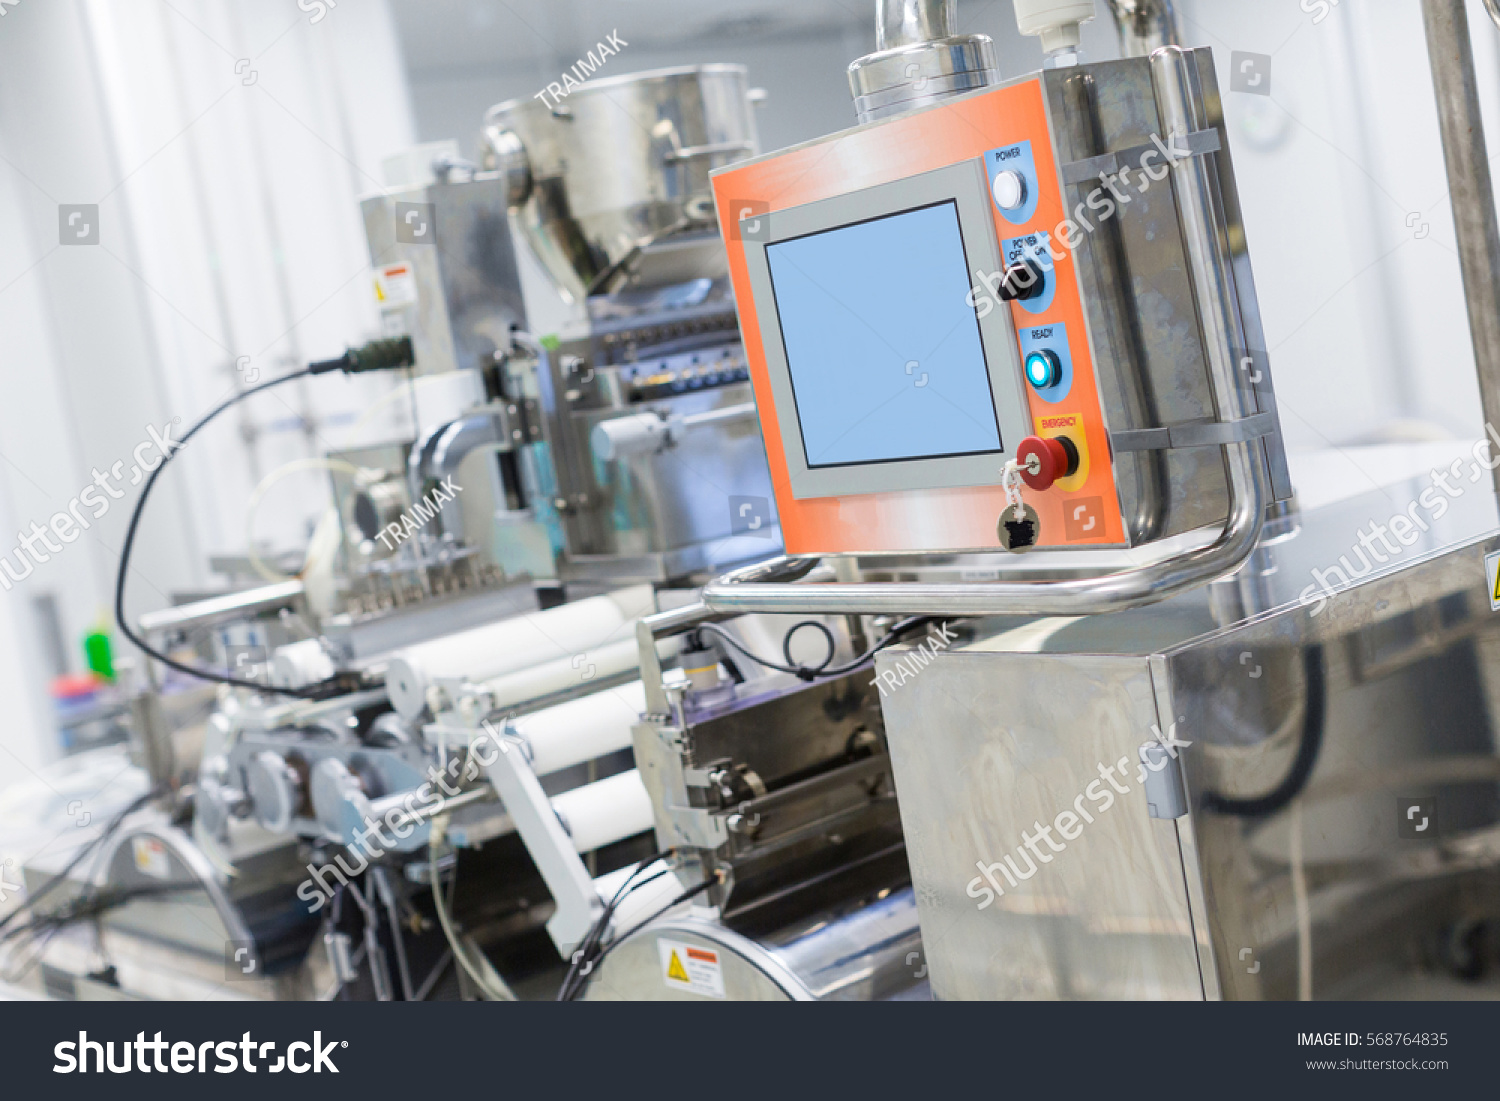 stock-photo-big-manufacture-machine-with-shafts-and-control-panel-568764835.jpg